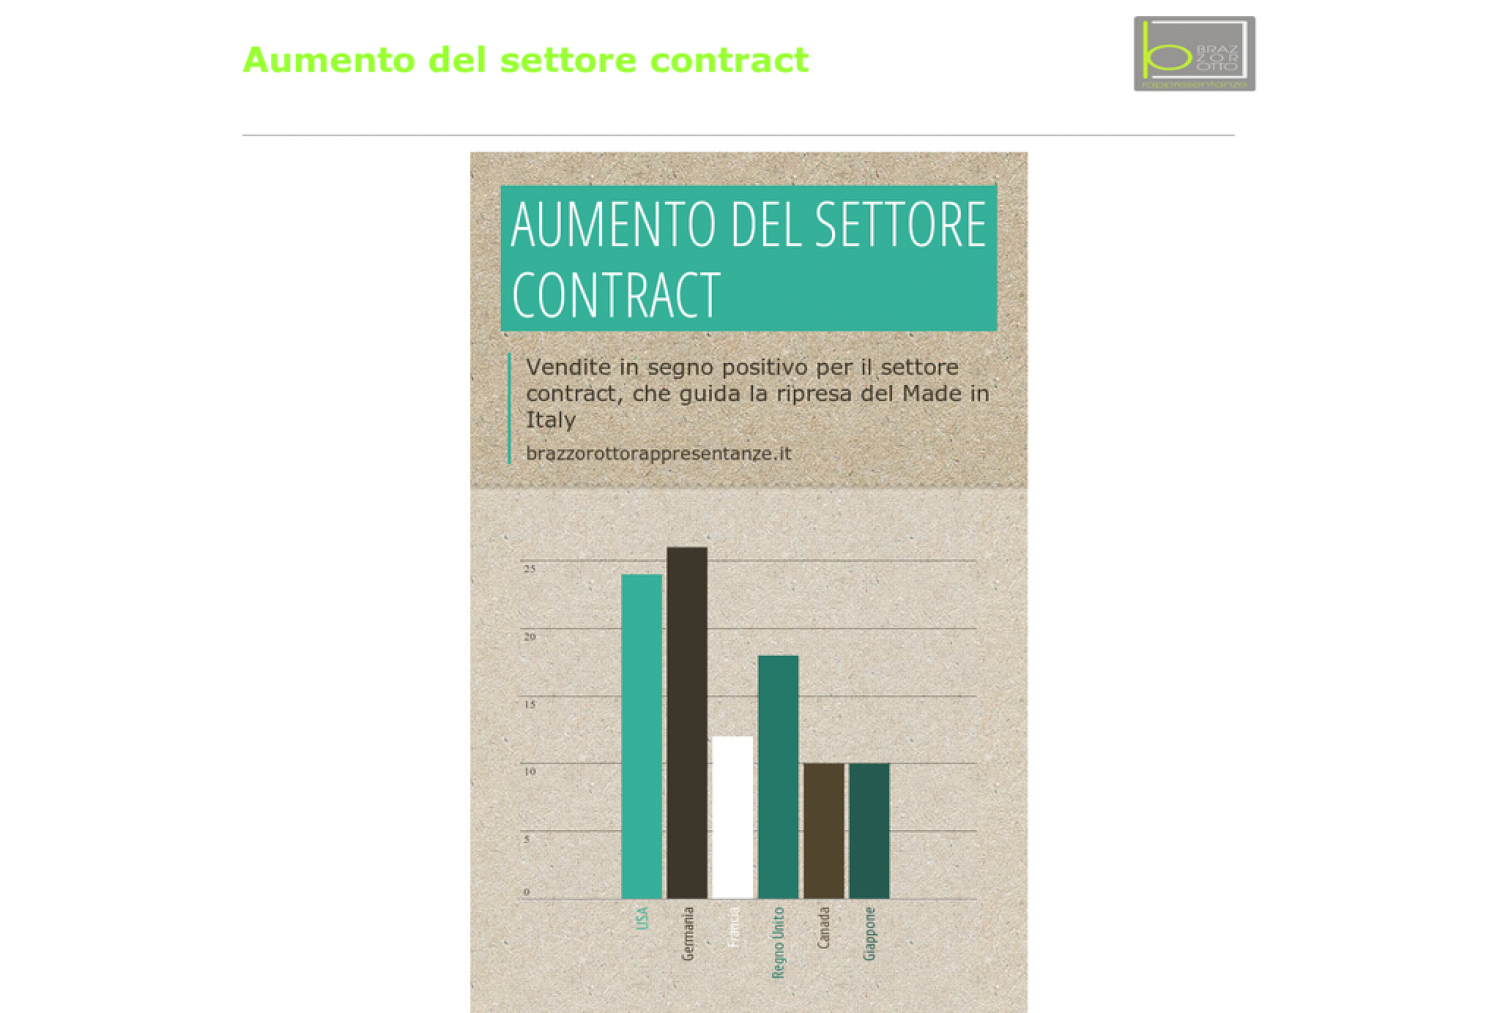 Aumento del settore contract Infographic